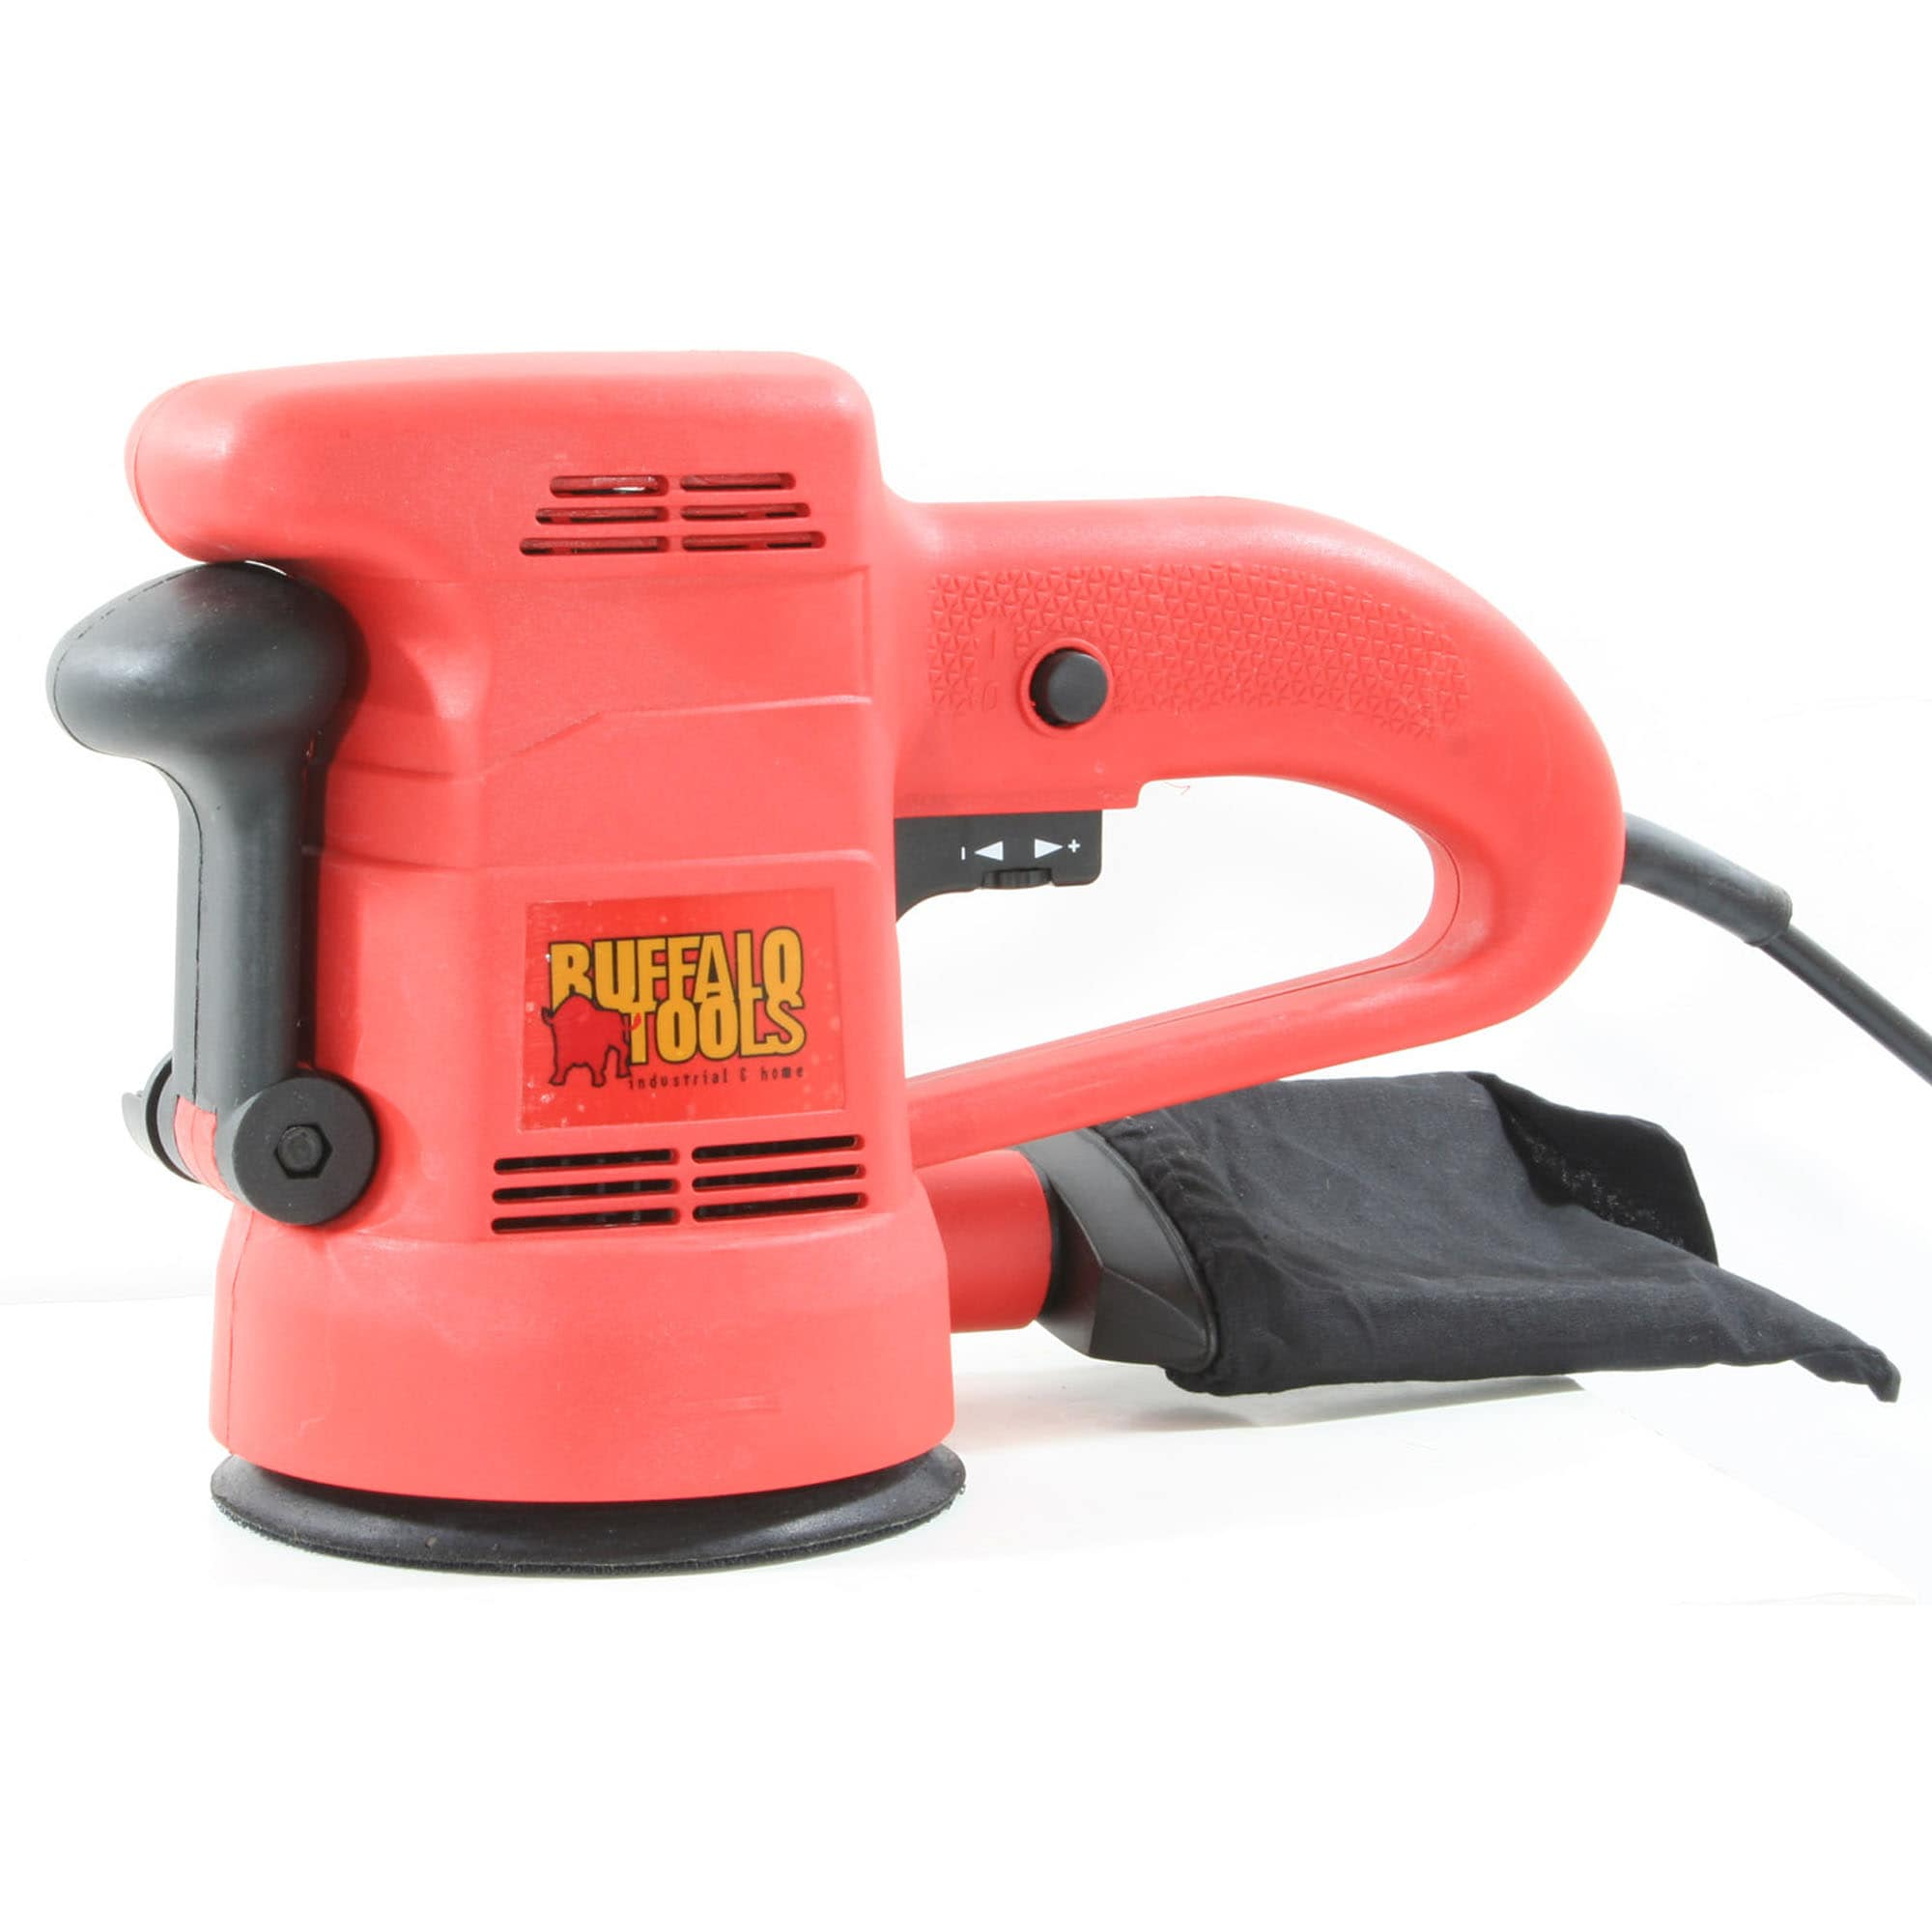 Buffalo Tools Electric 5-inch Orbital Sander at Sears.com